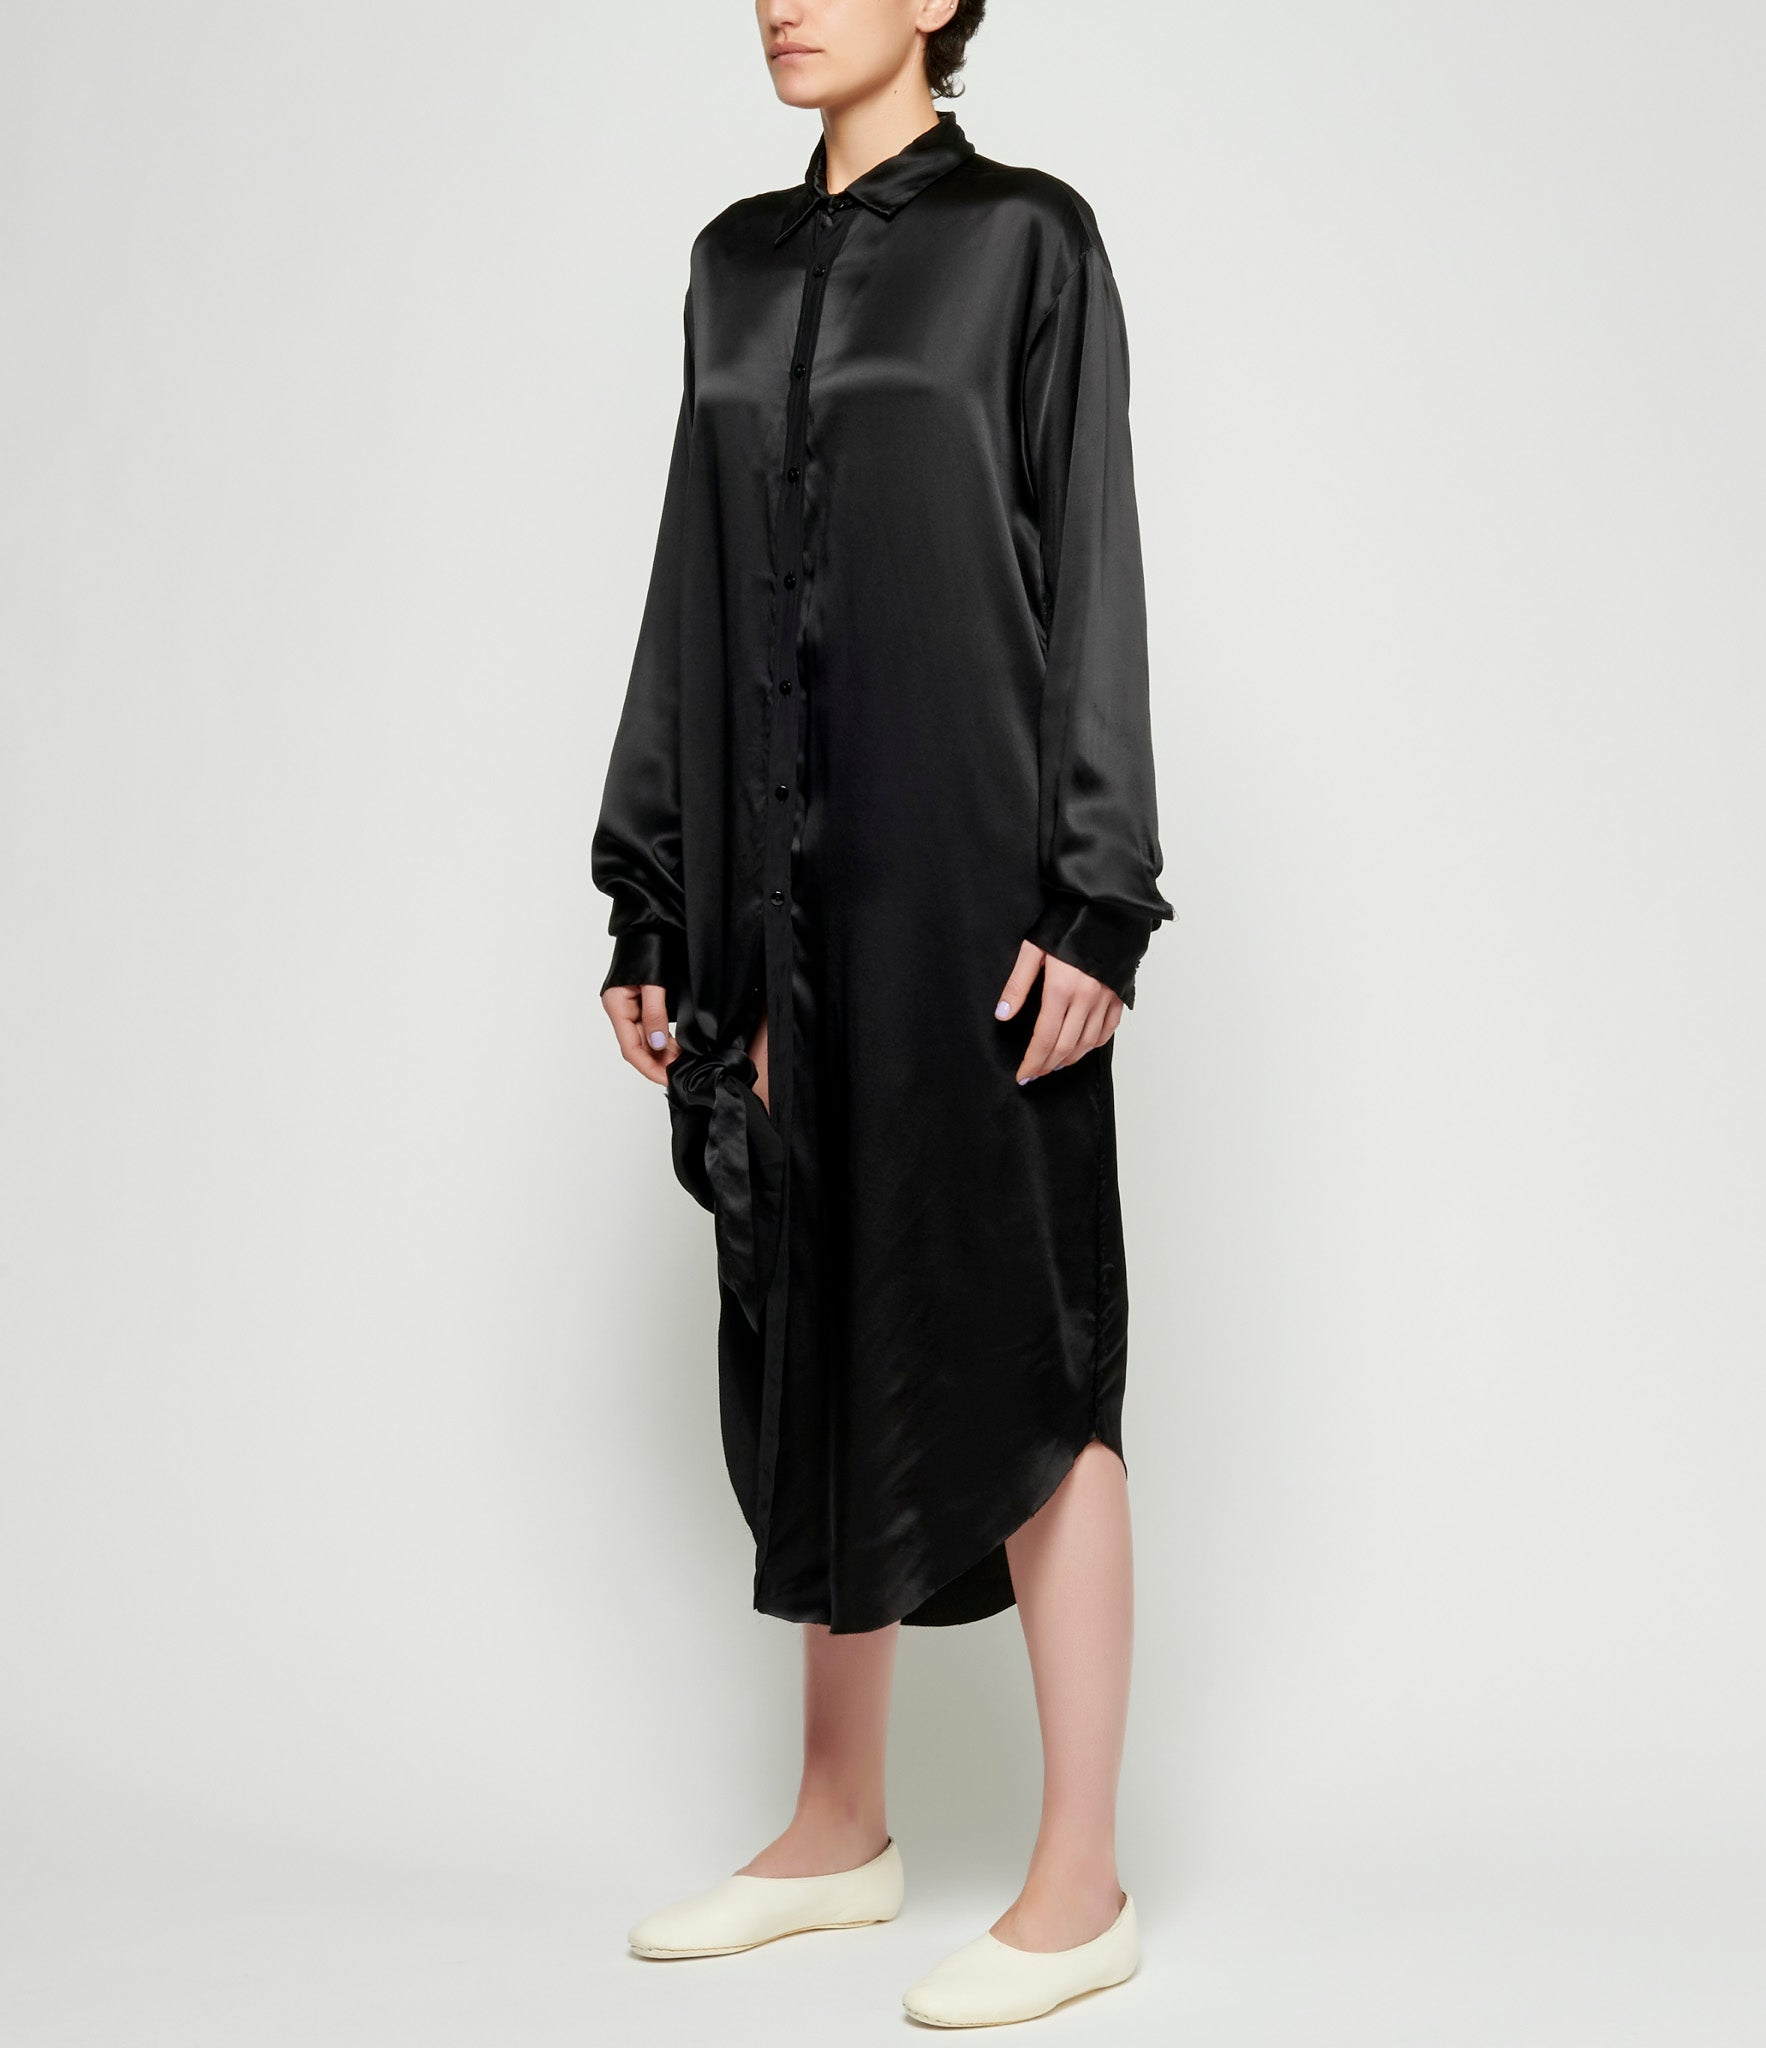 Elena Dawson Black Light Silk Satin Extra Long Shirt